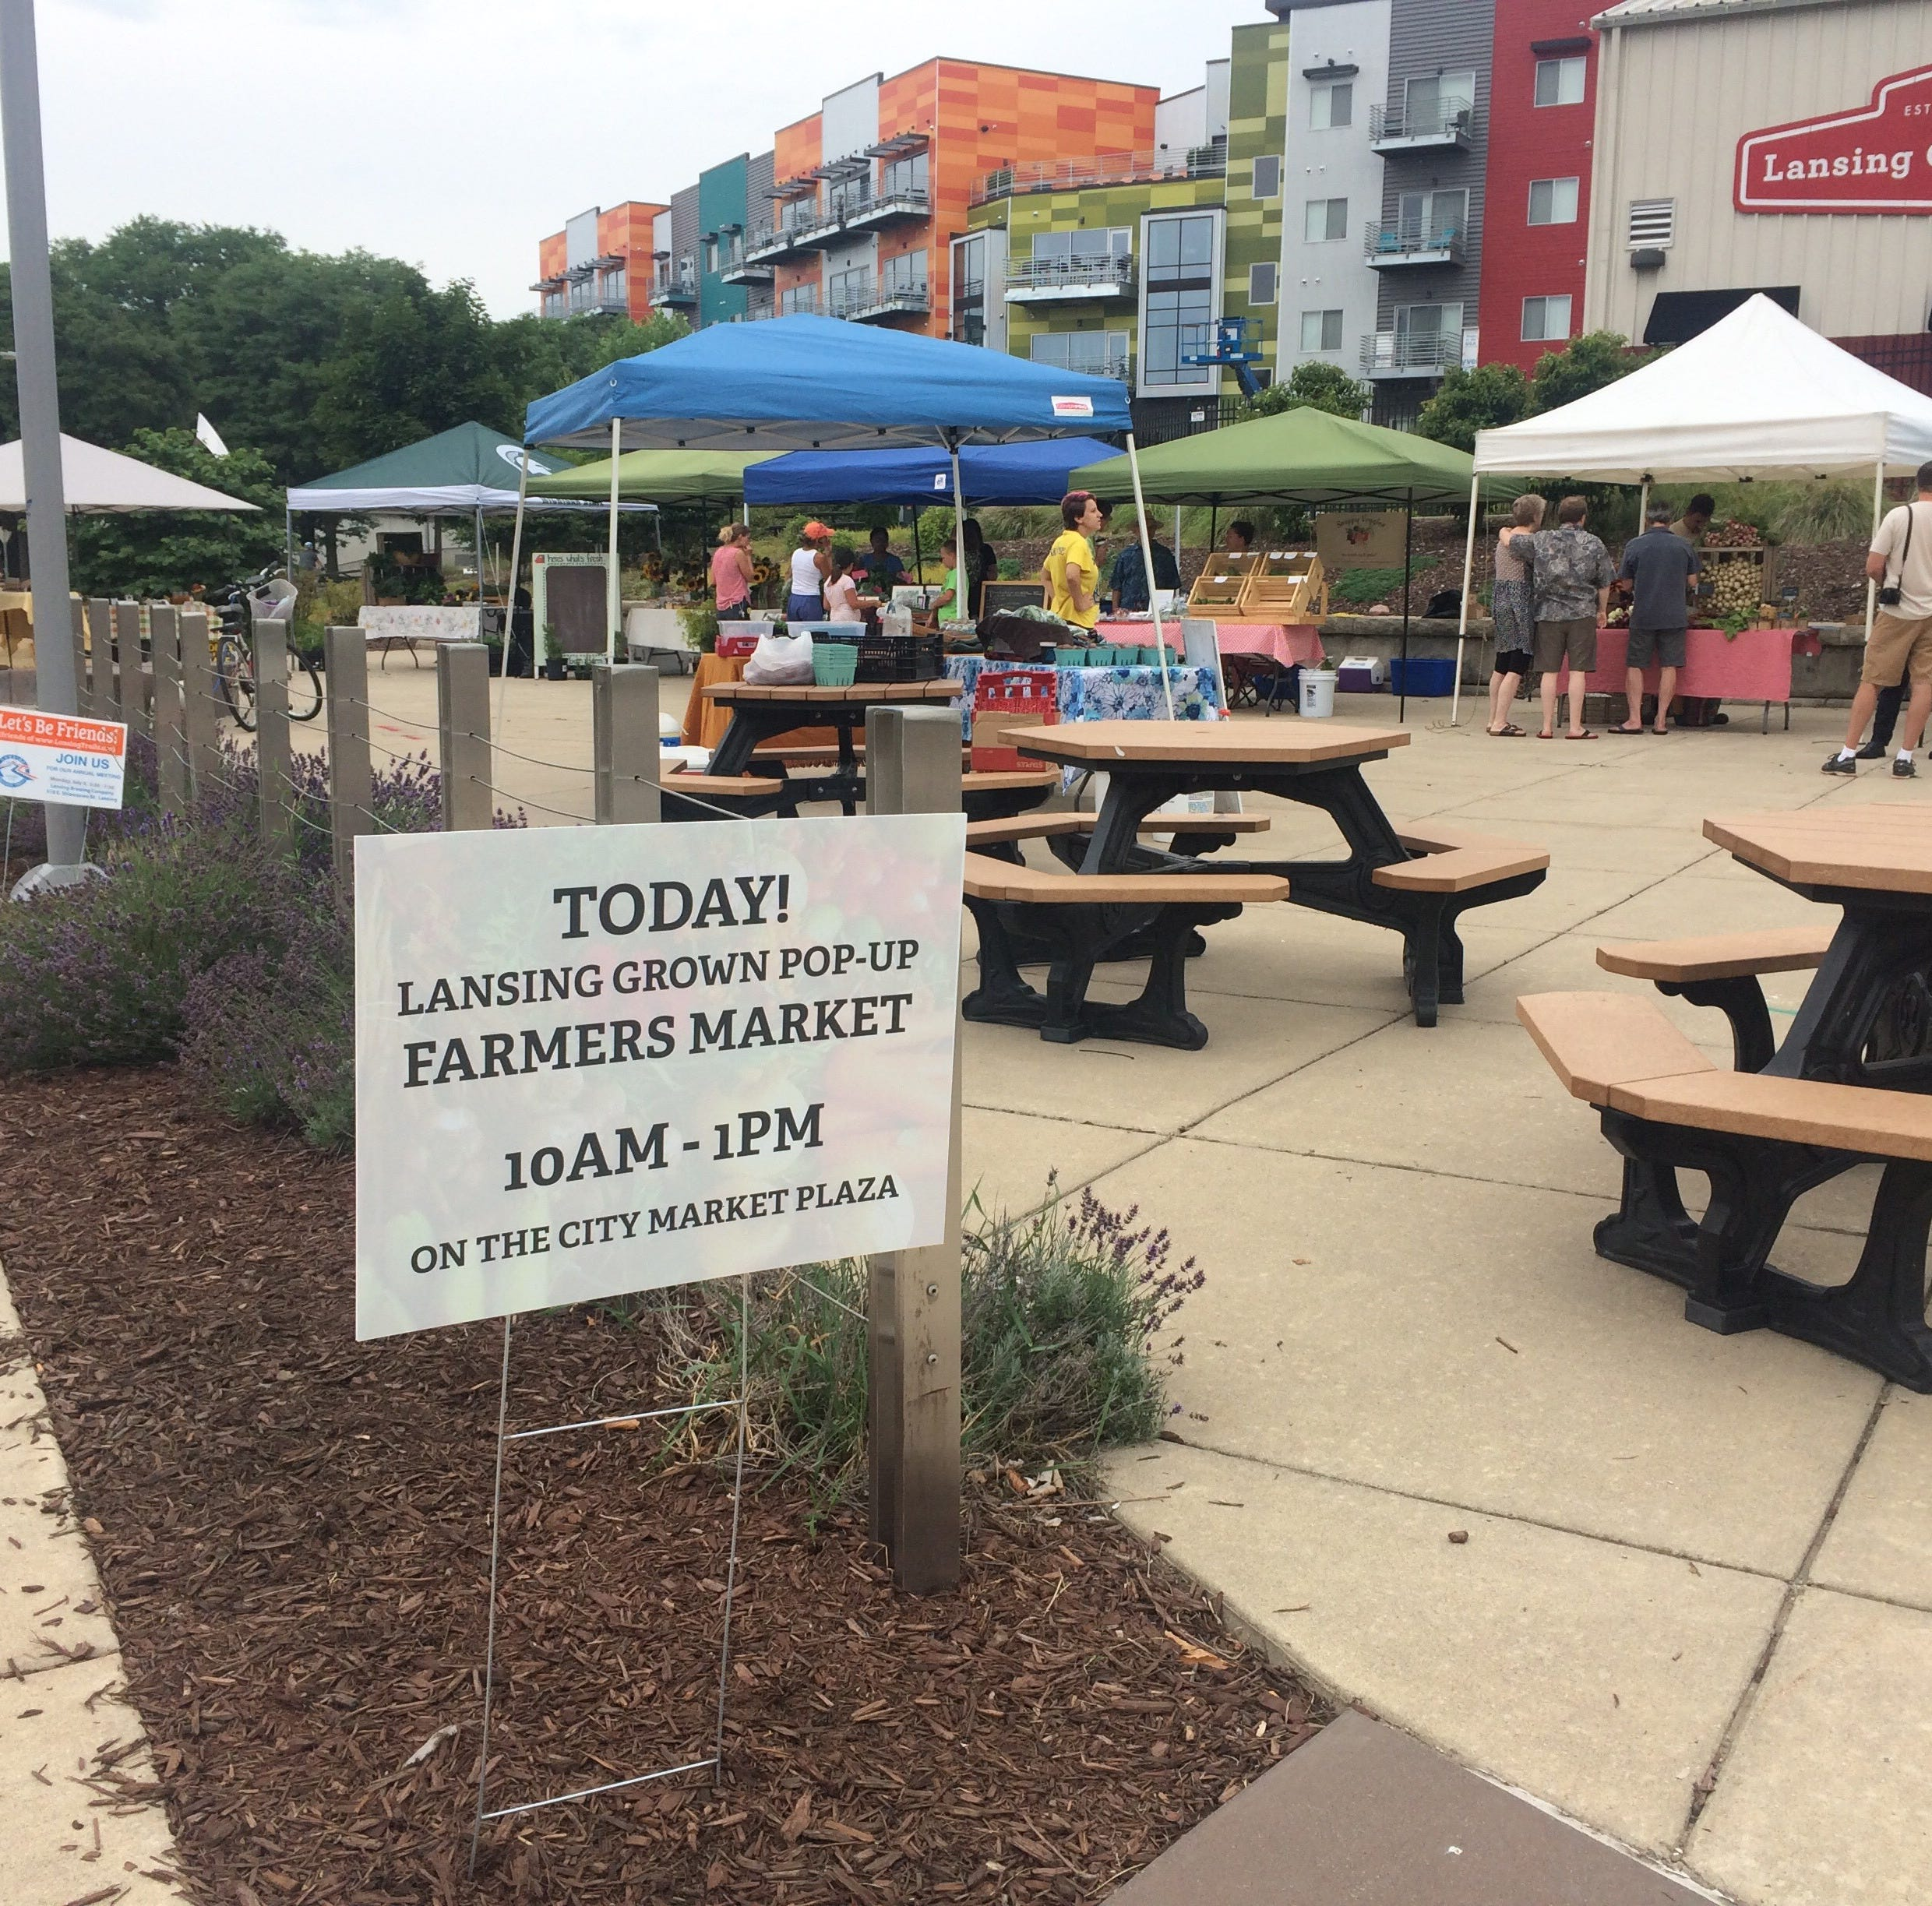 Putnam: Saturday pop-up market features produce from urban farms in Lansing, Lansing Township